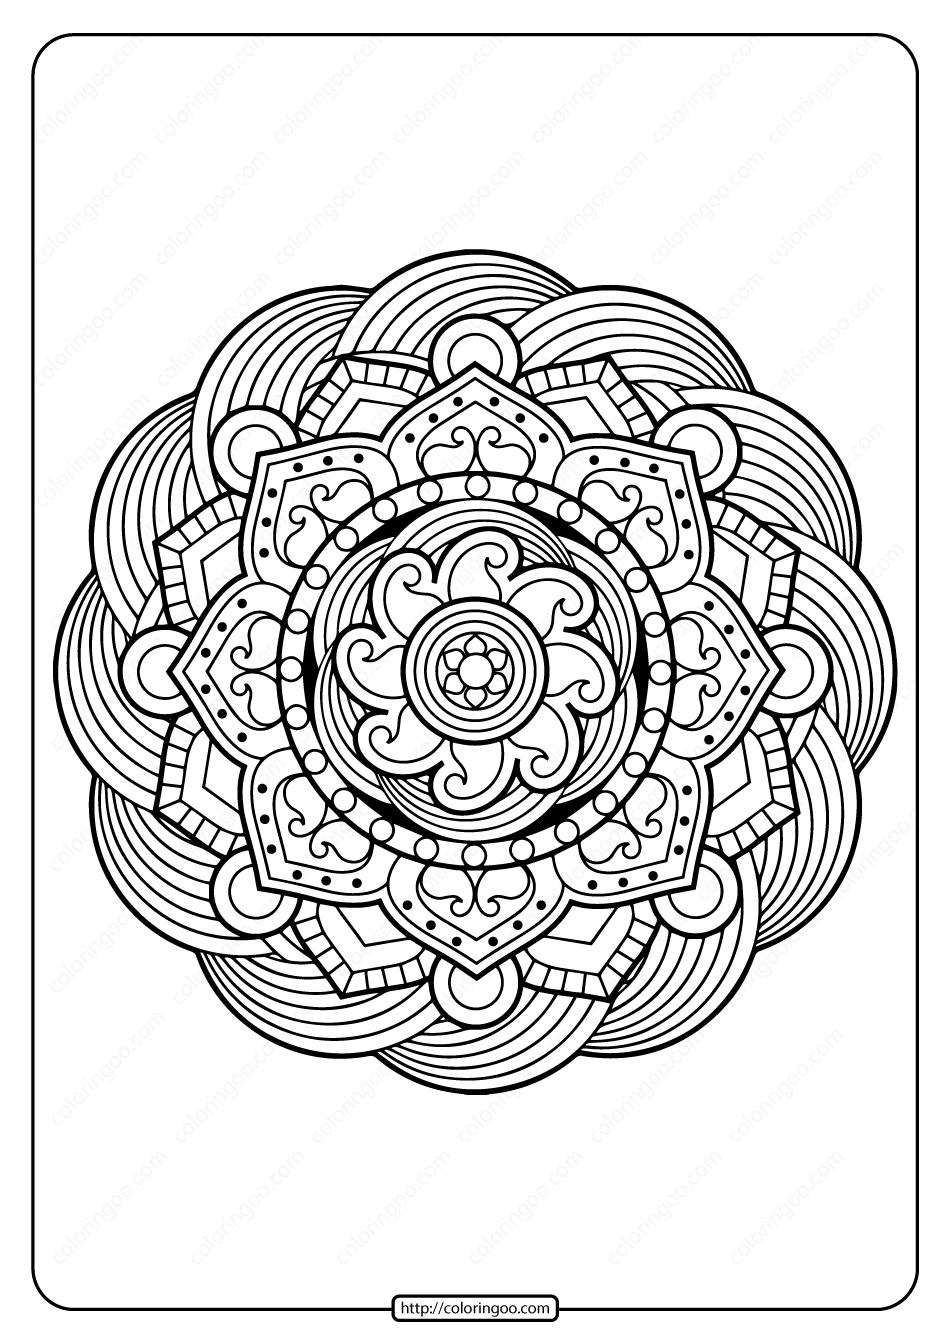 Printable PDF Coloring Book Pages for Adults 011